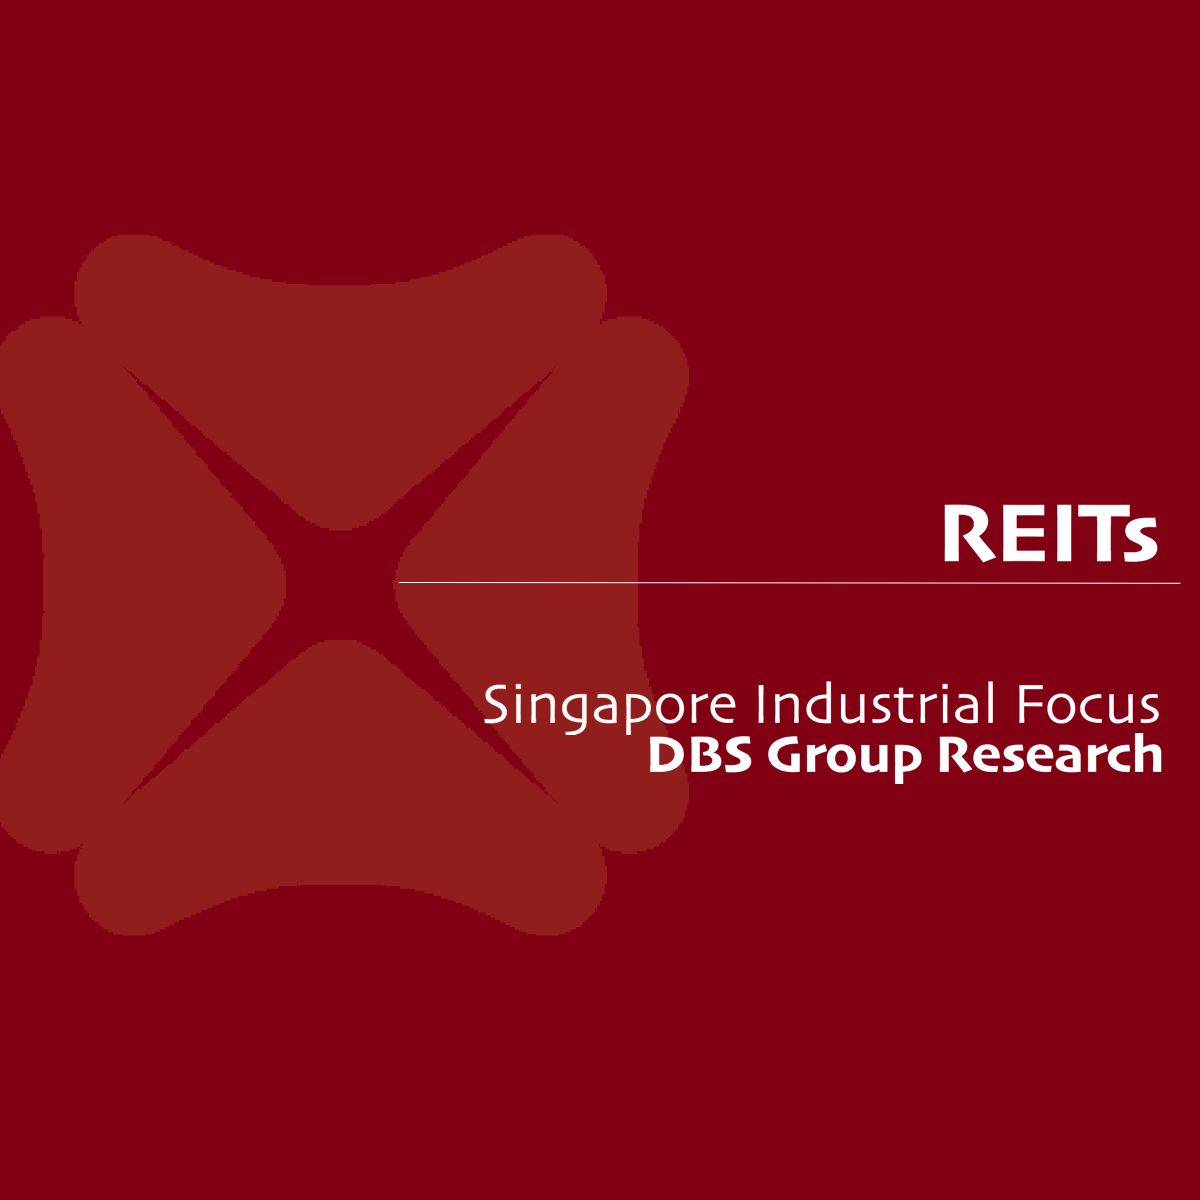 Singapore Property/REITs - DBS Vickers 2018-05-08:  the Time Is Now